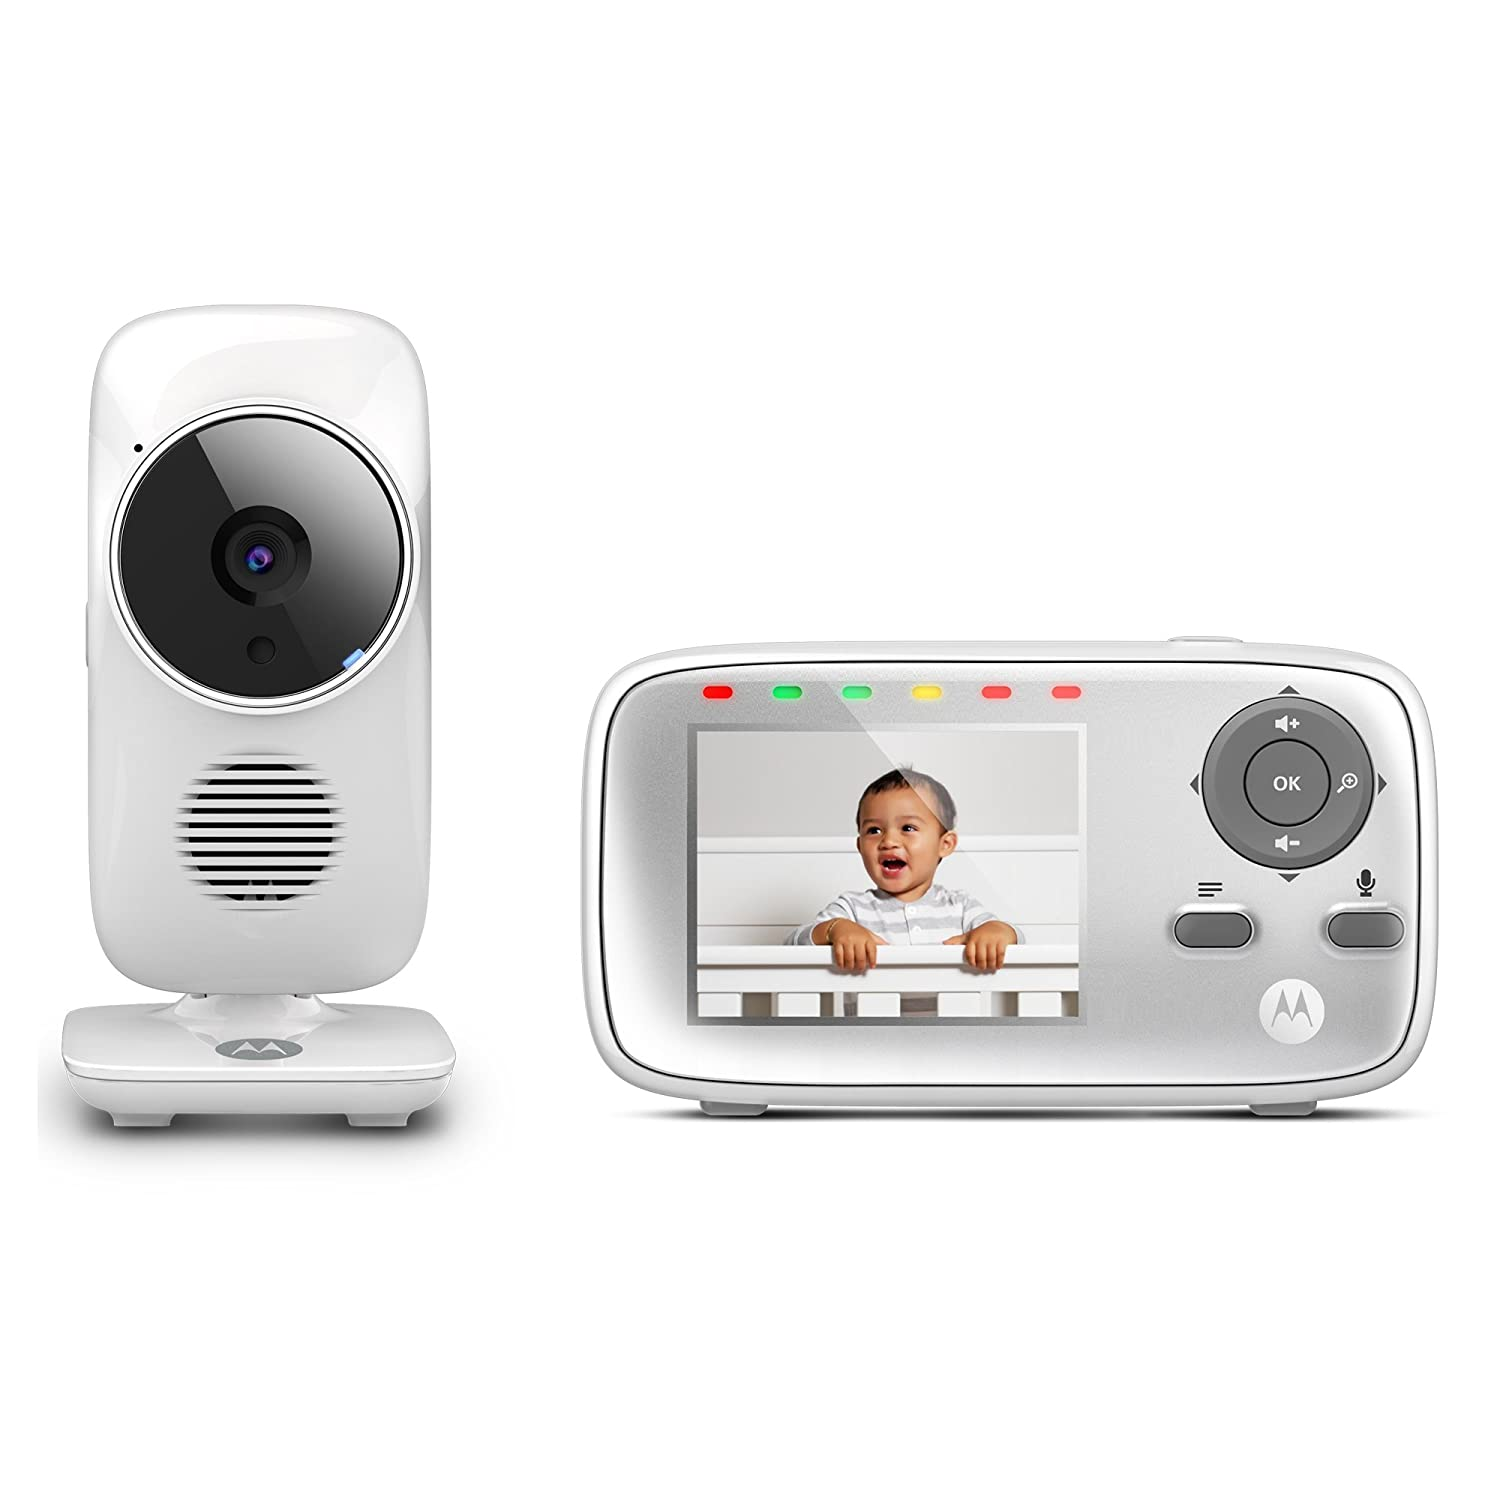 Motgoldla 2.4 GHz Digital Video Baby Monitor with color Screen, 2.8  BABY PRODUCT